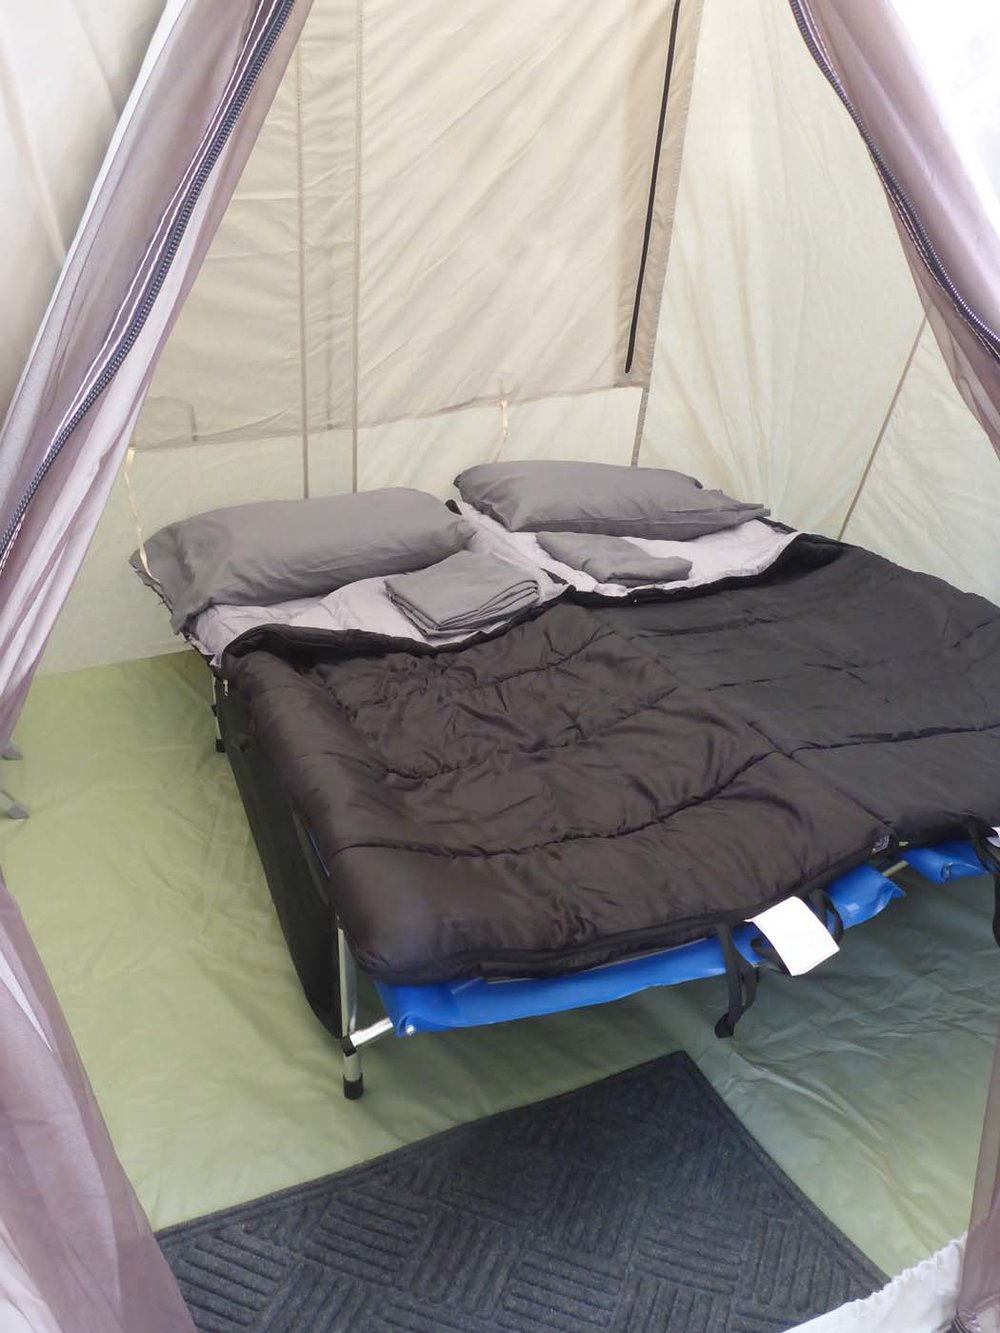 zion-camping-cots-sleeping bags-pillows-sheets.jpg